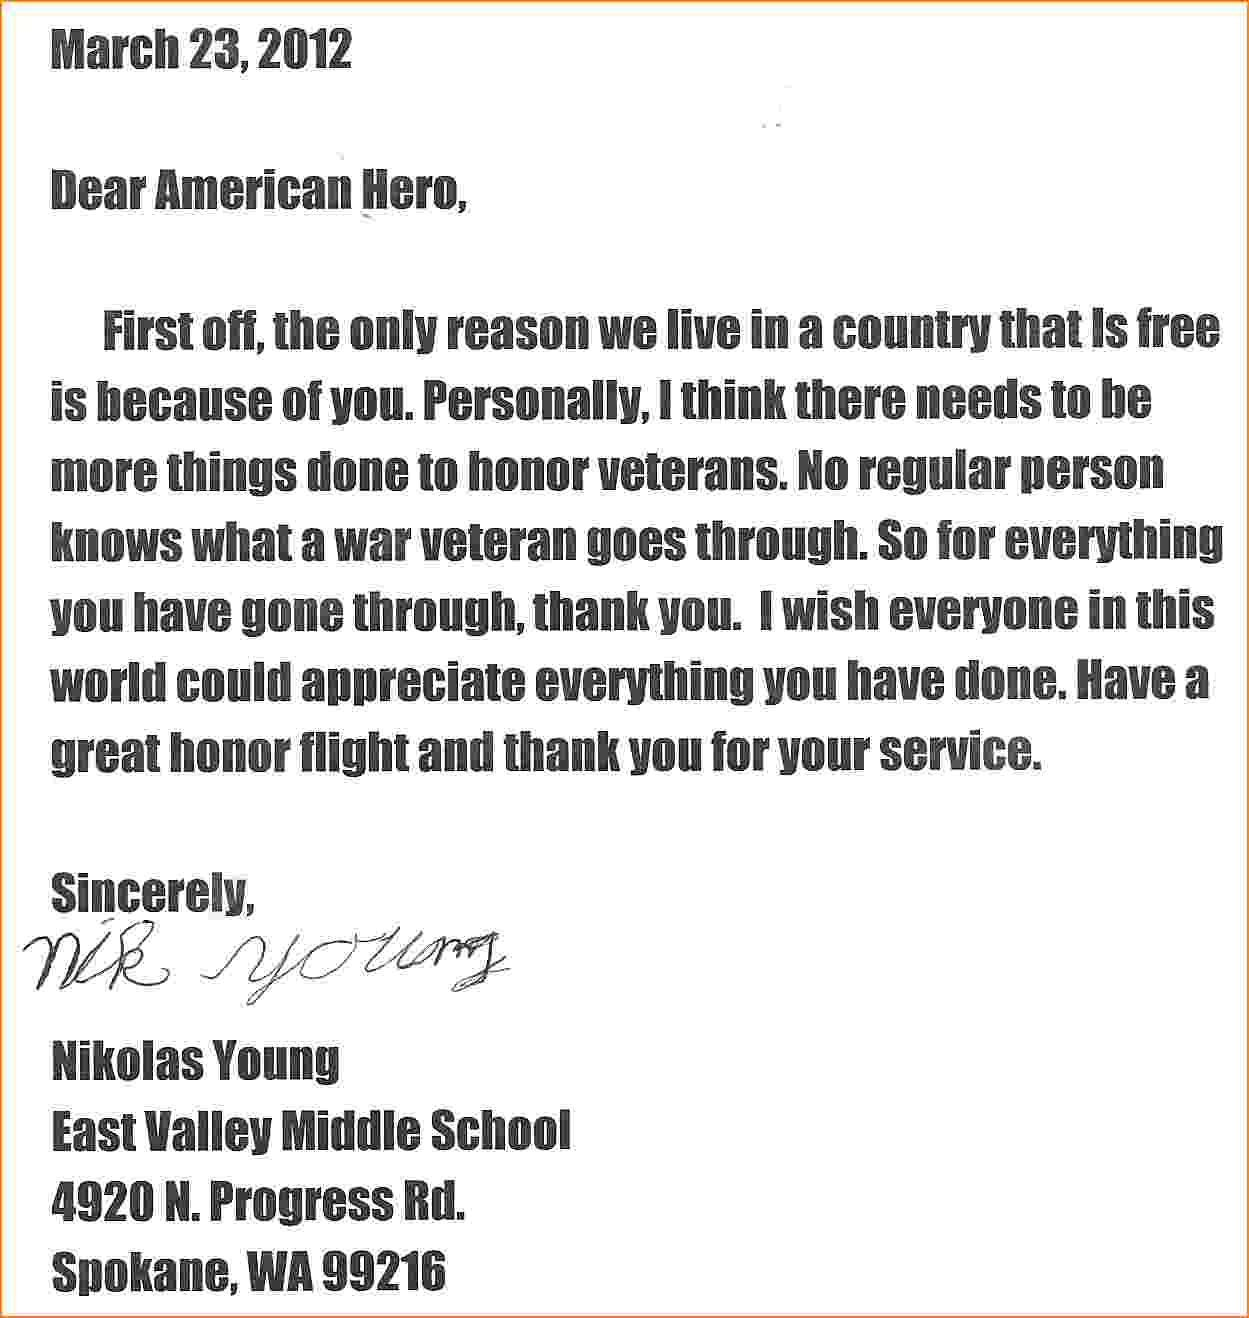 Honor Flight Letter Examples